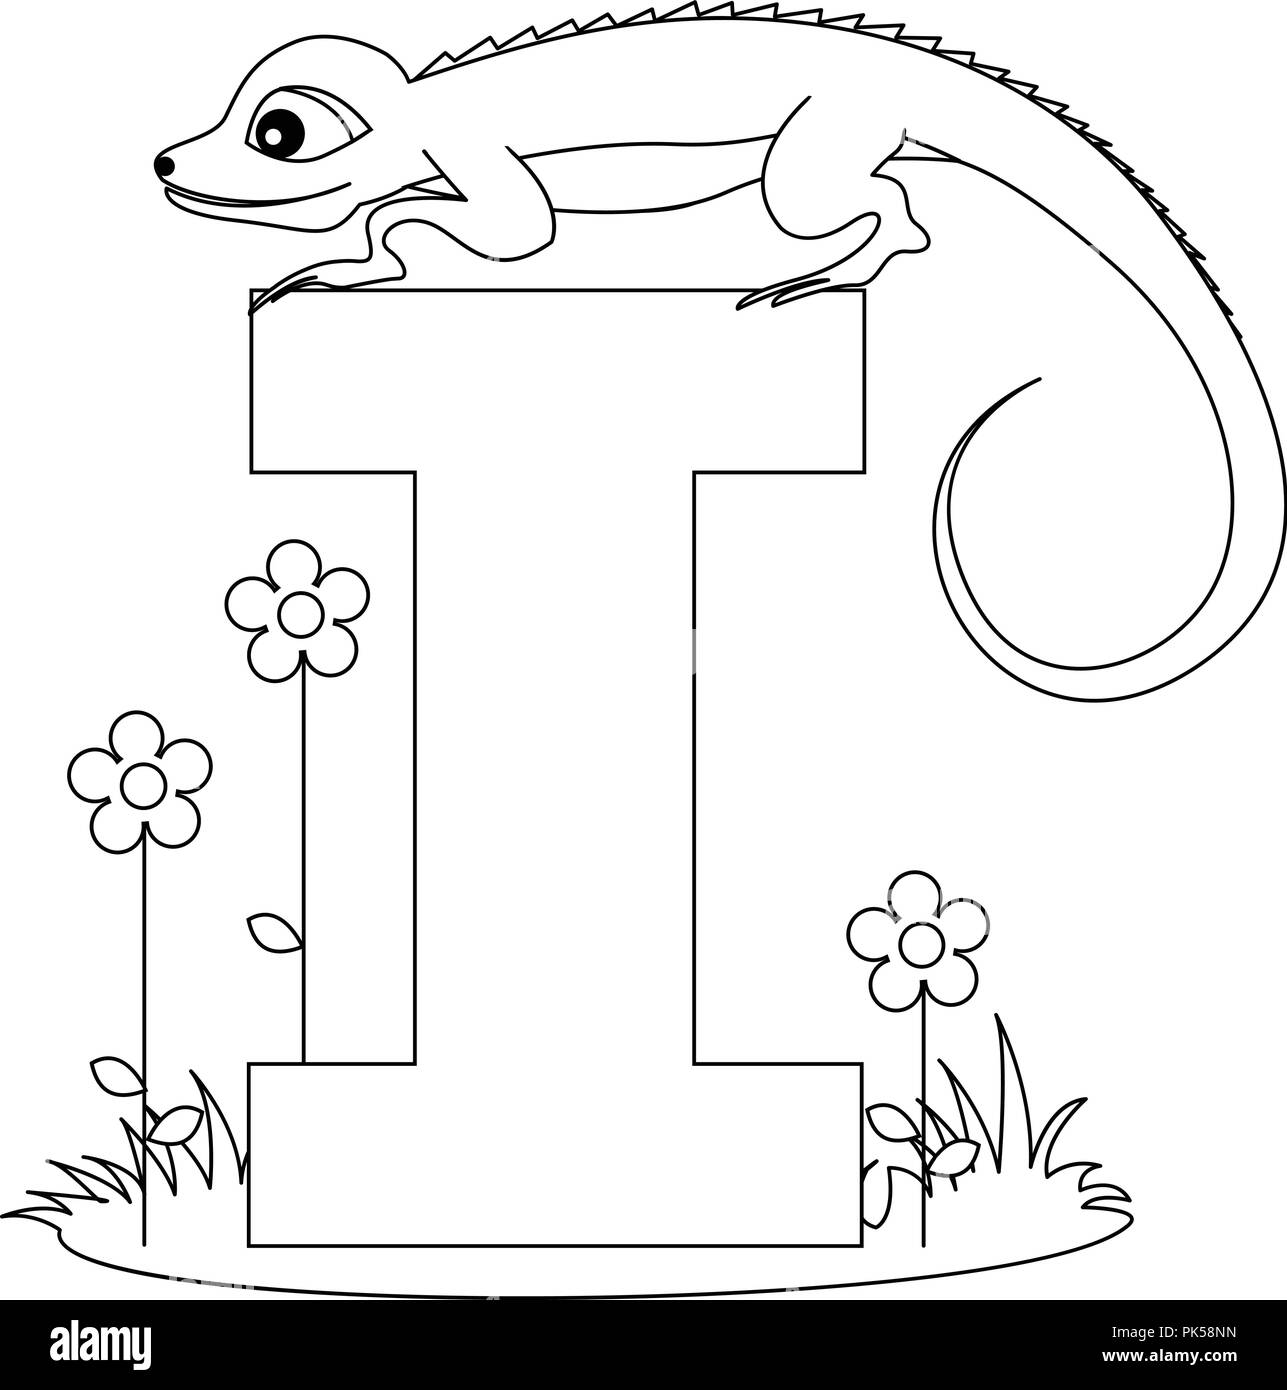 Animal alphabet coloring book illustration with outlined ...